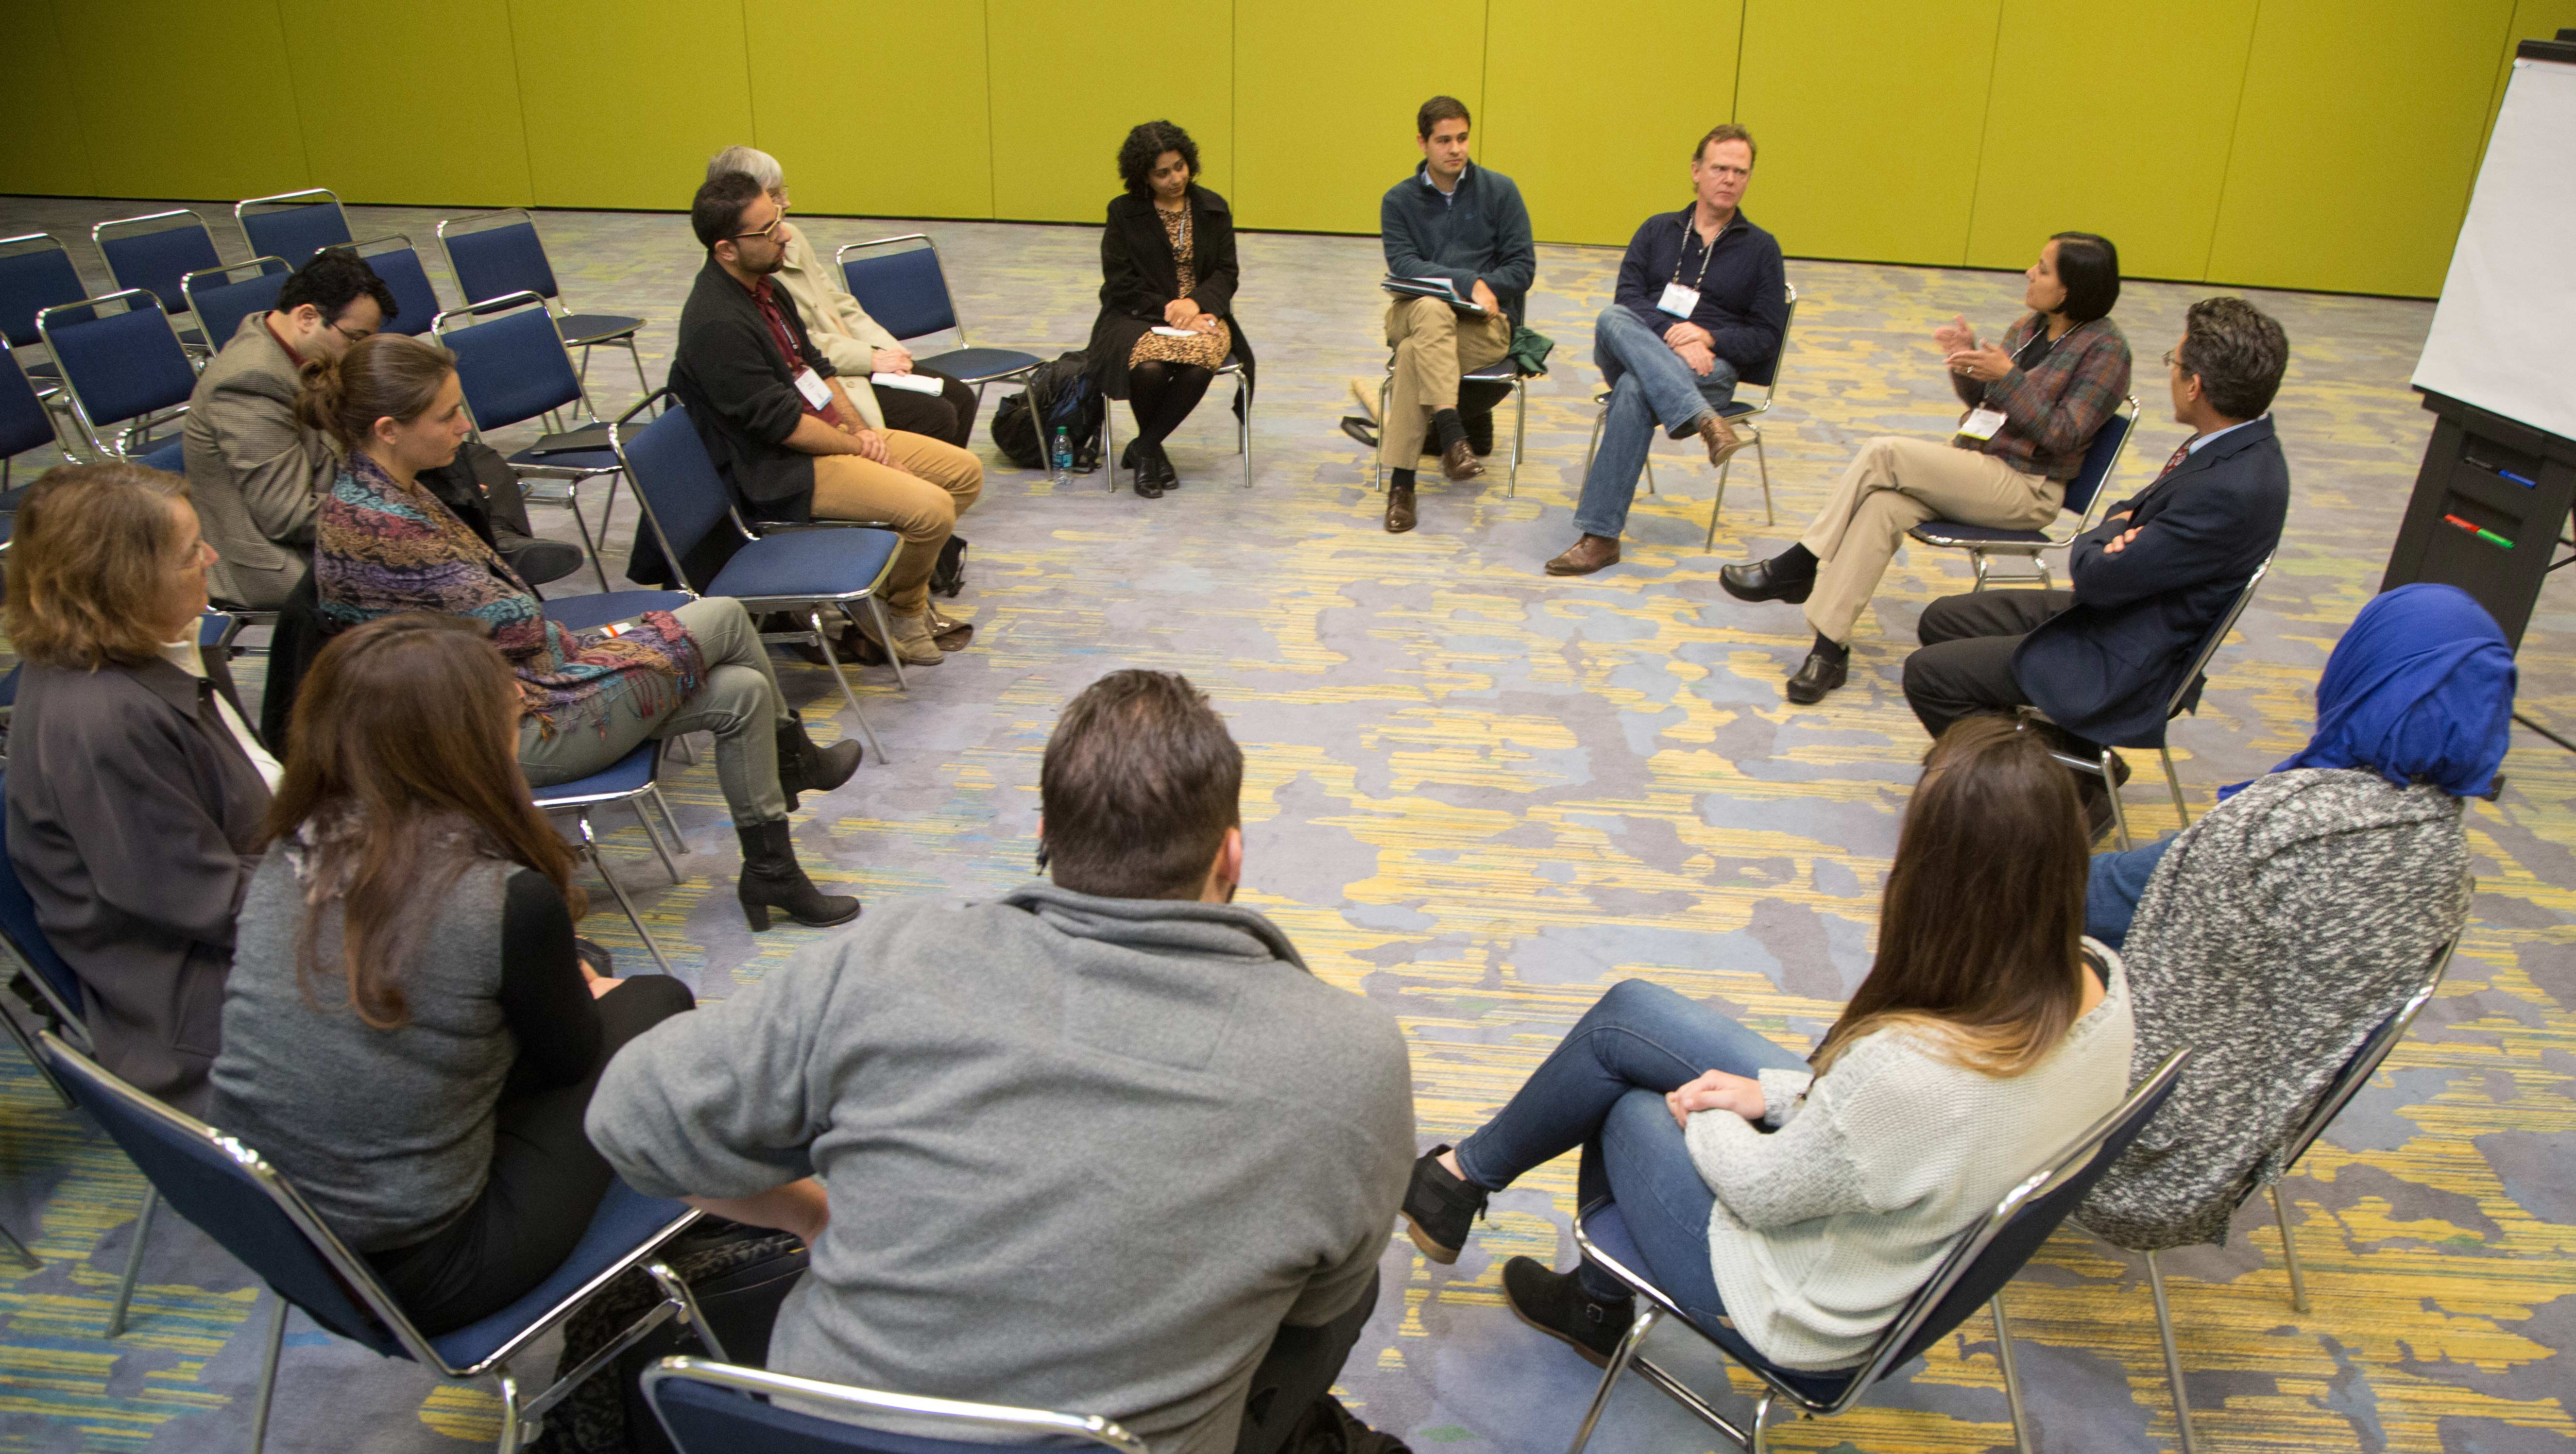 A group of faculty and students sit in a circle and have a discussion.